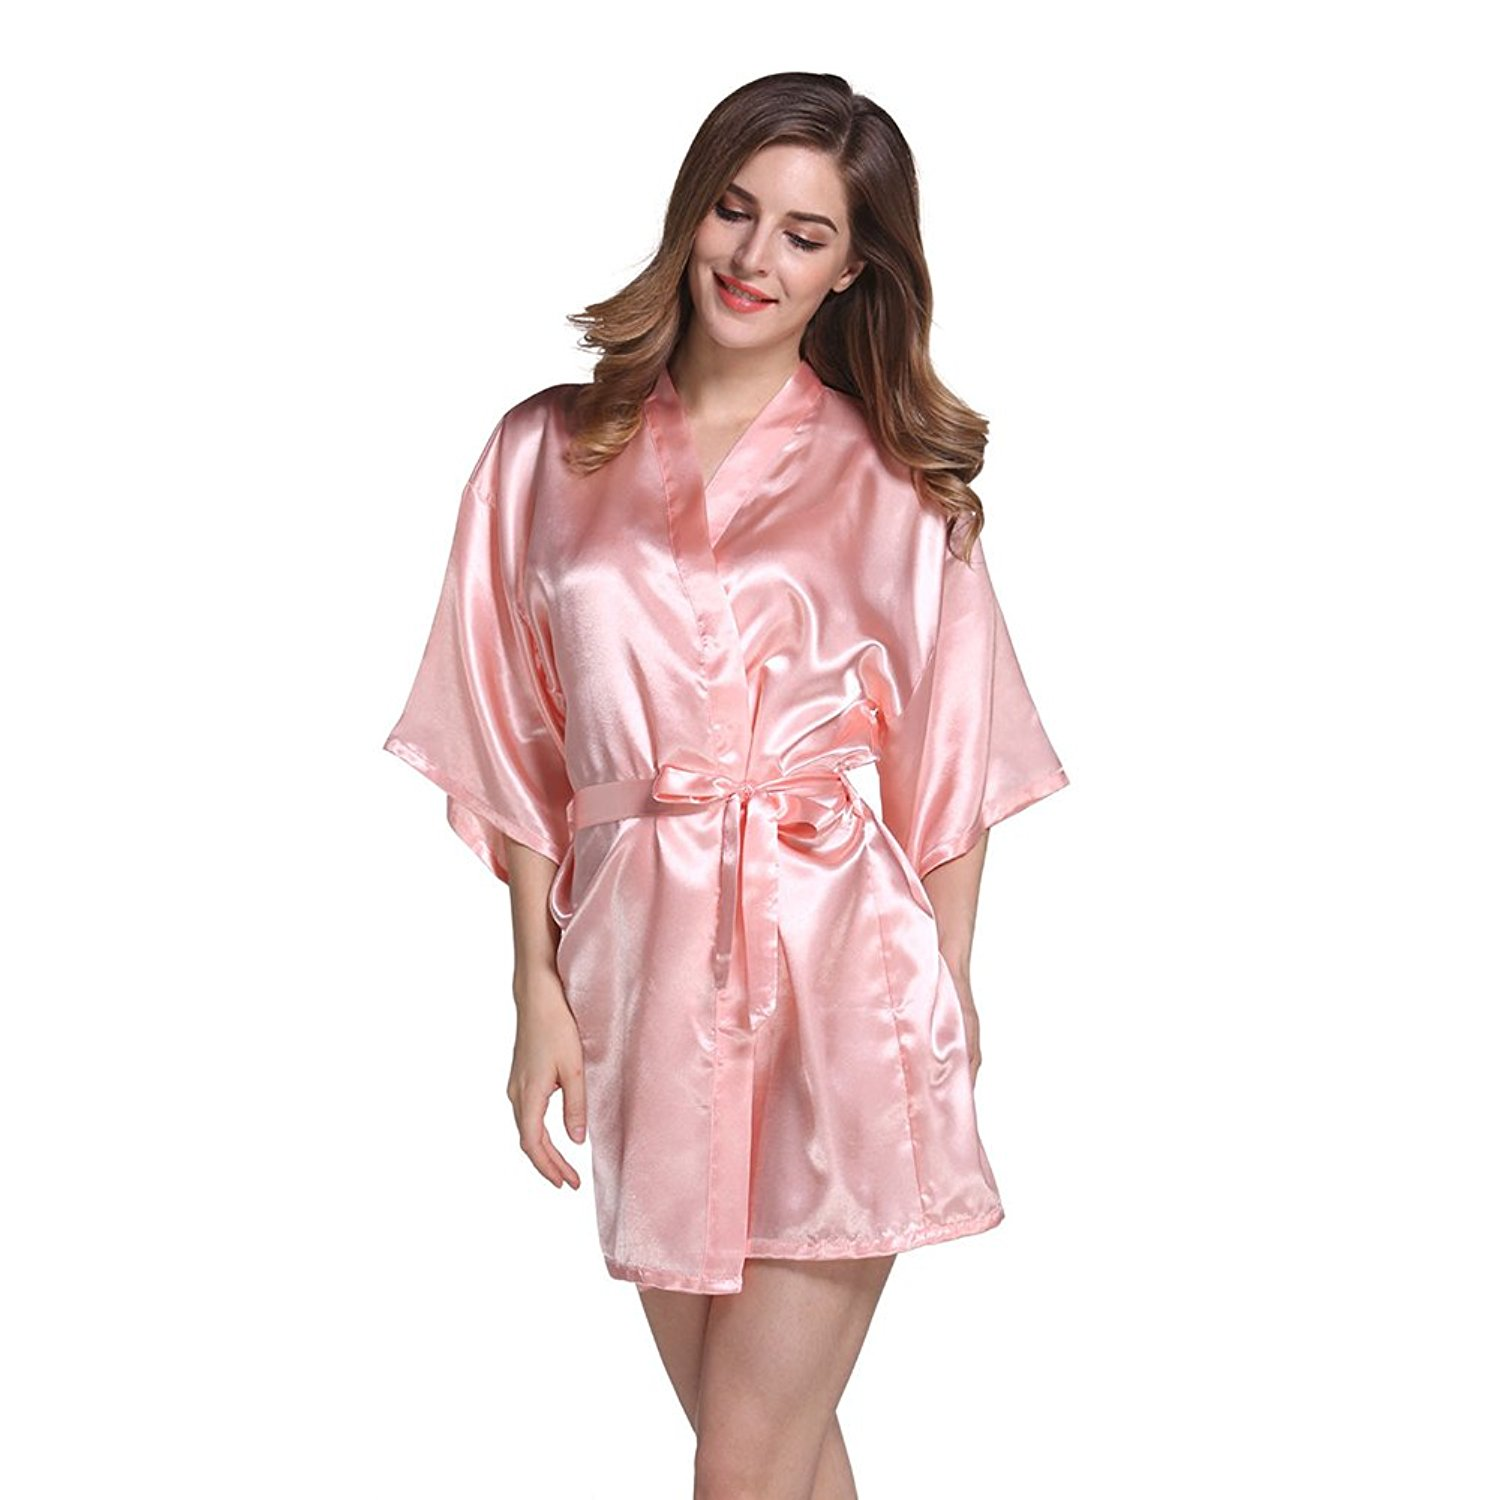 c88b13294 Get Quotations · Amurleopard Womens Kimono Robe Knee Length Bridal Lingerie  Sleepwear Pure Colour Short Satin Robe